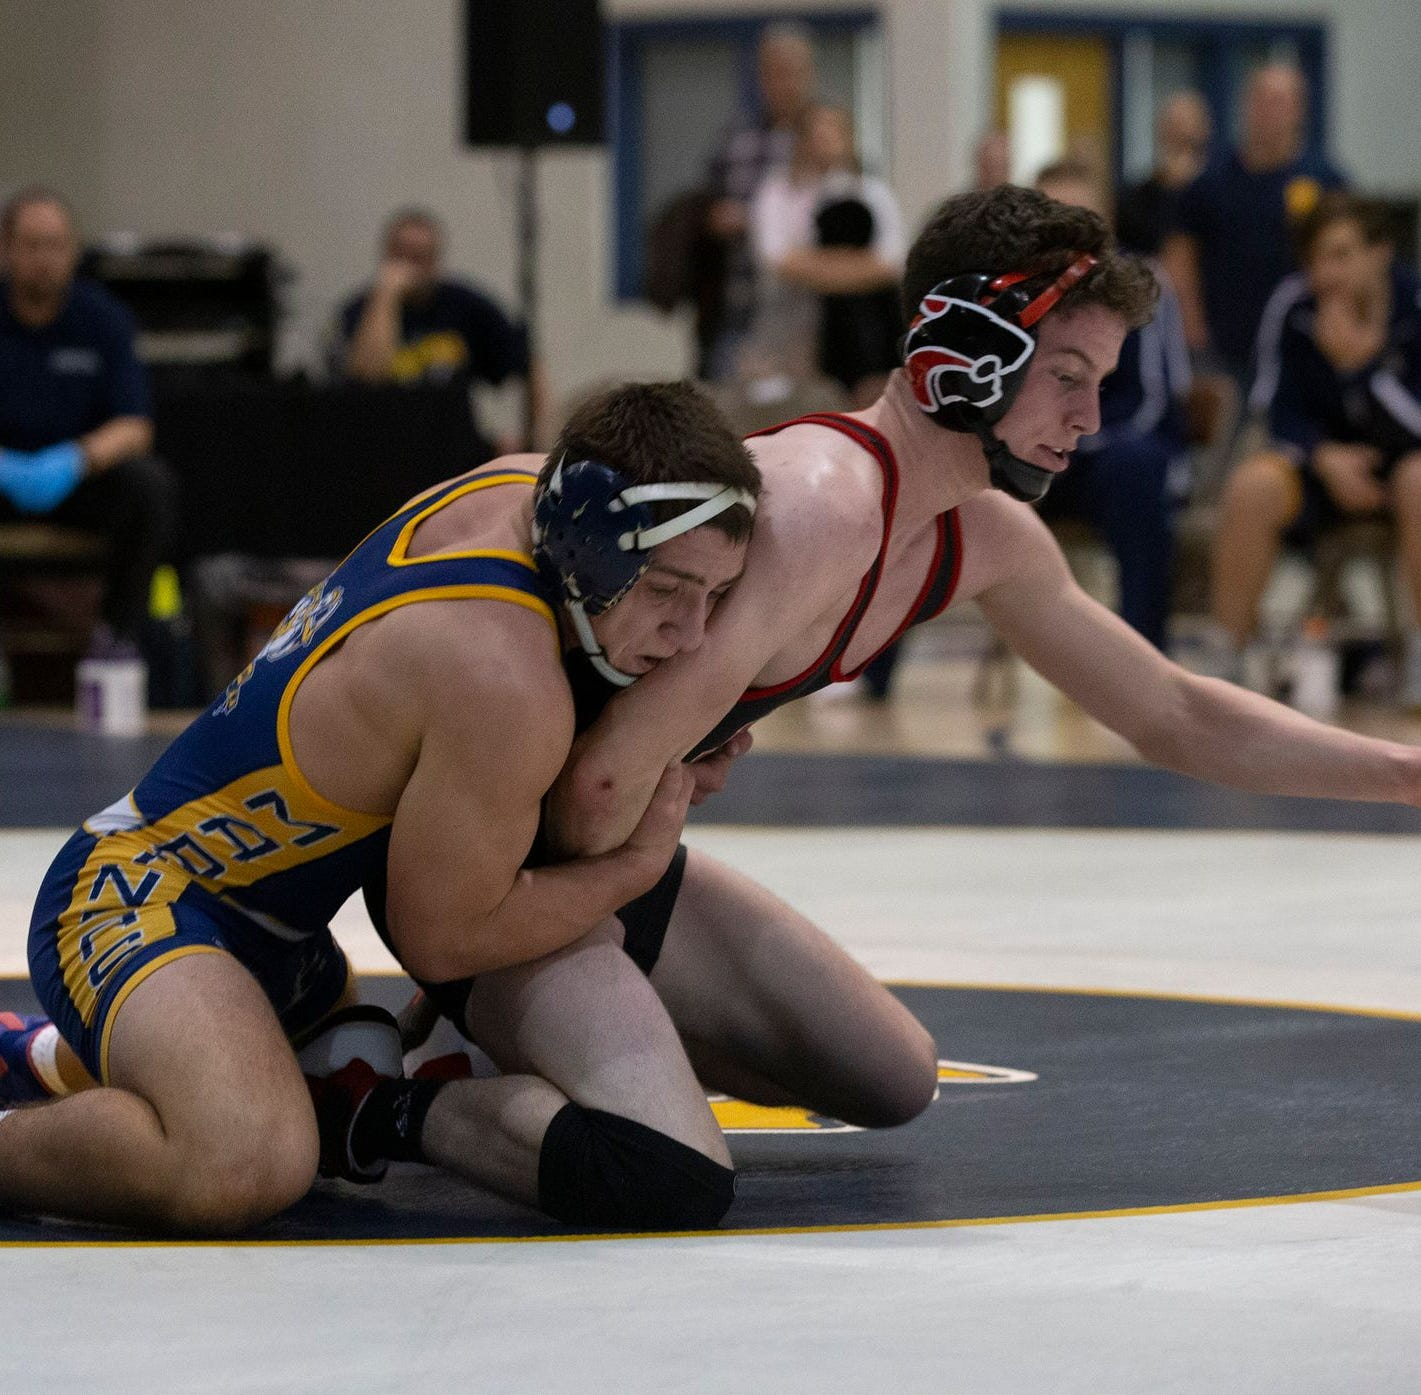 NJ wrestling: Toms River North ends drought against Southern, closes in on title